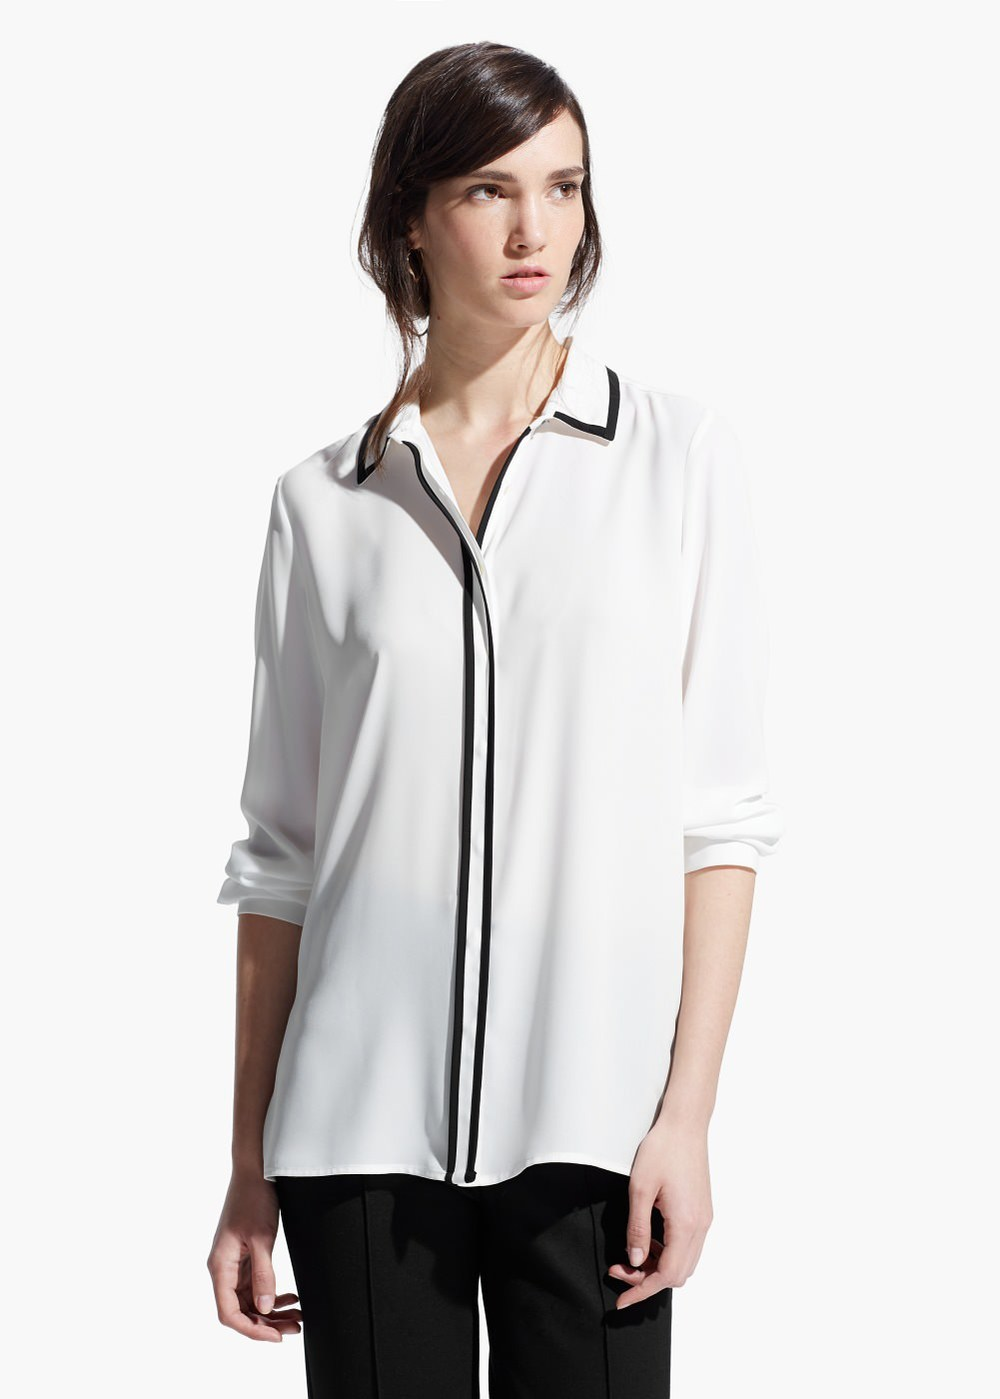 Contrast Trim Shirt , $59.99